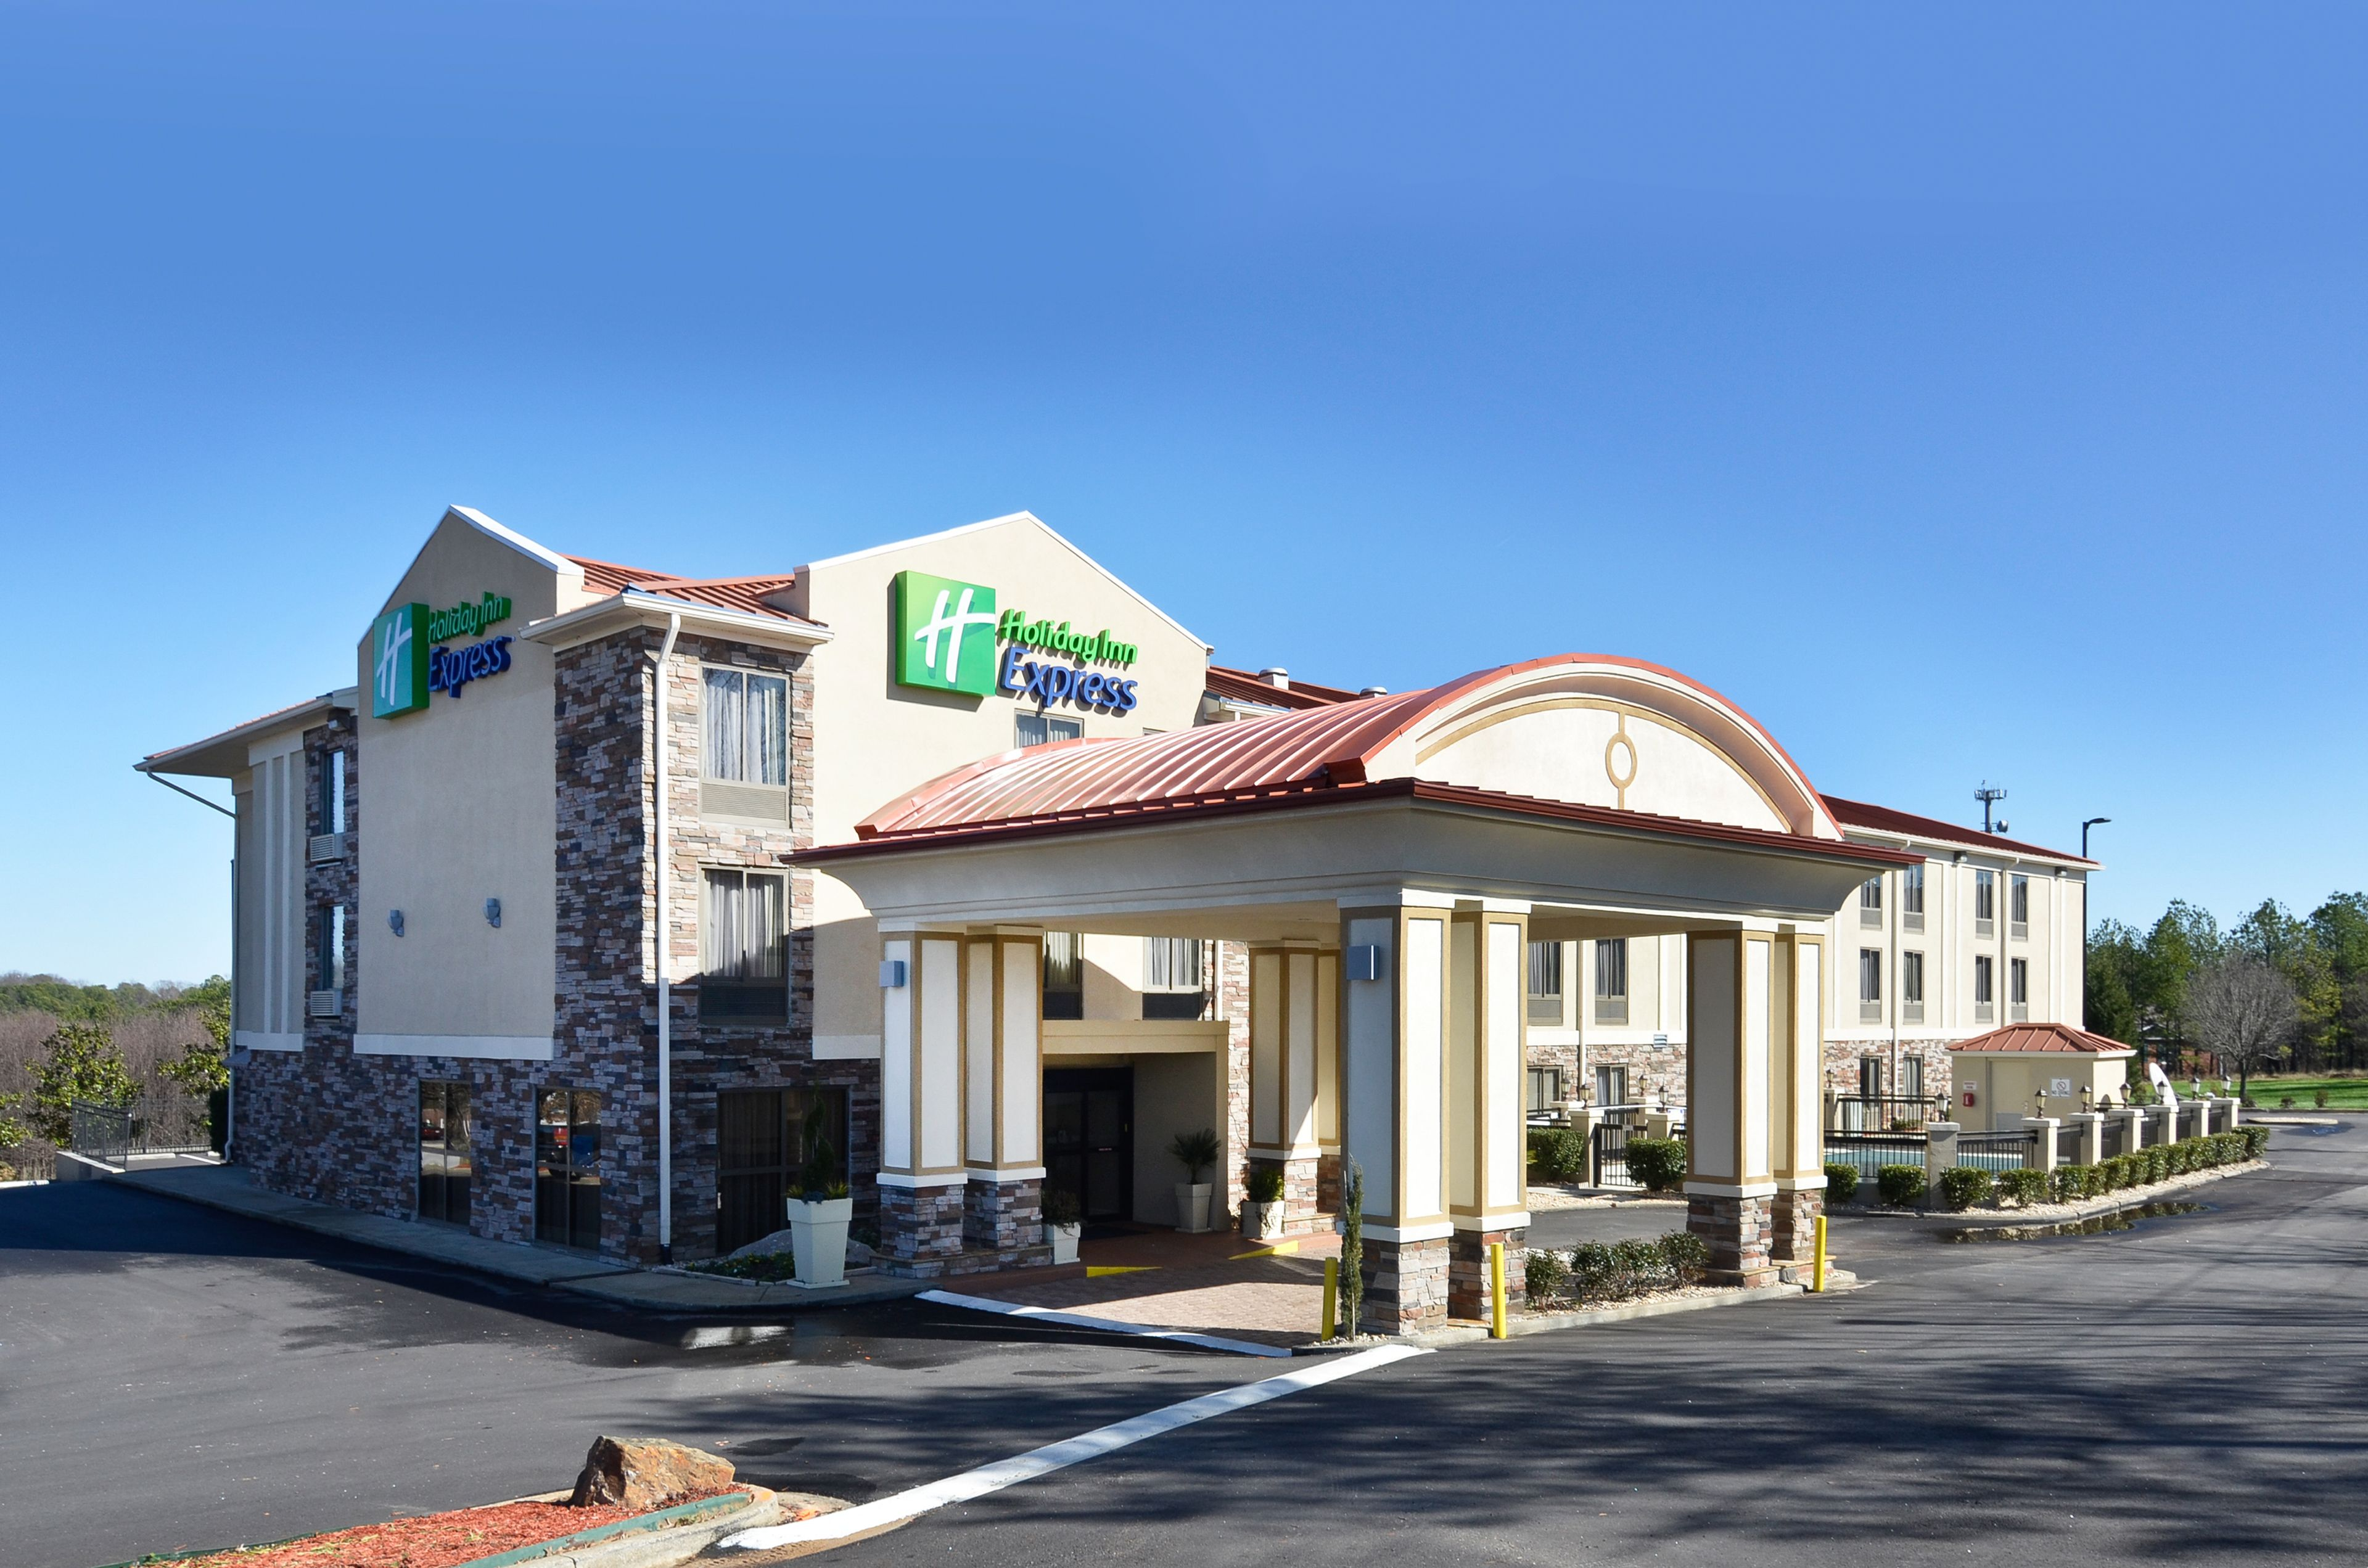 Holiday Inn Express Suites Atlanta Johns Creek At 7146 Mcginnis Ferry Rd Suwanee Ga On Fave